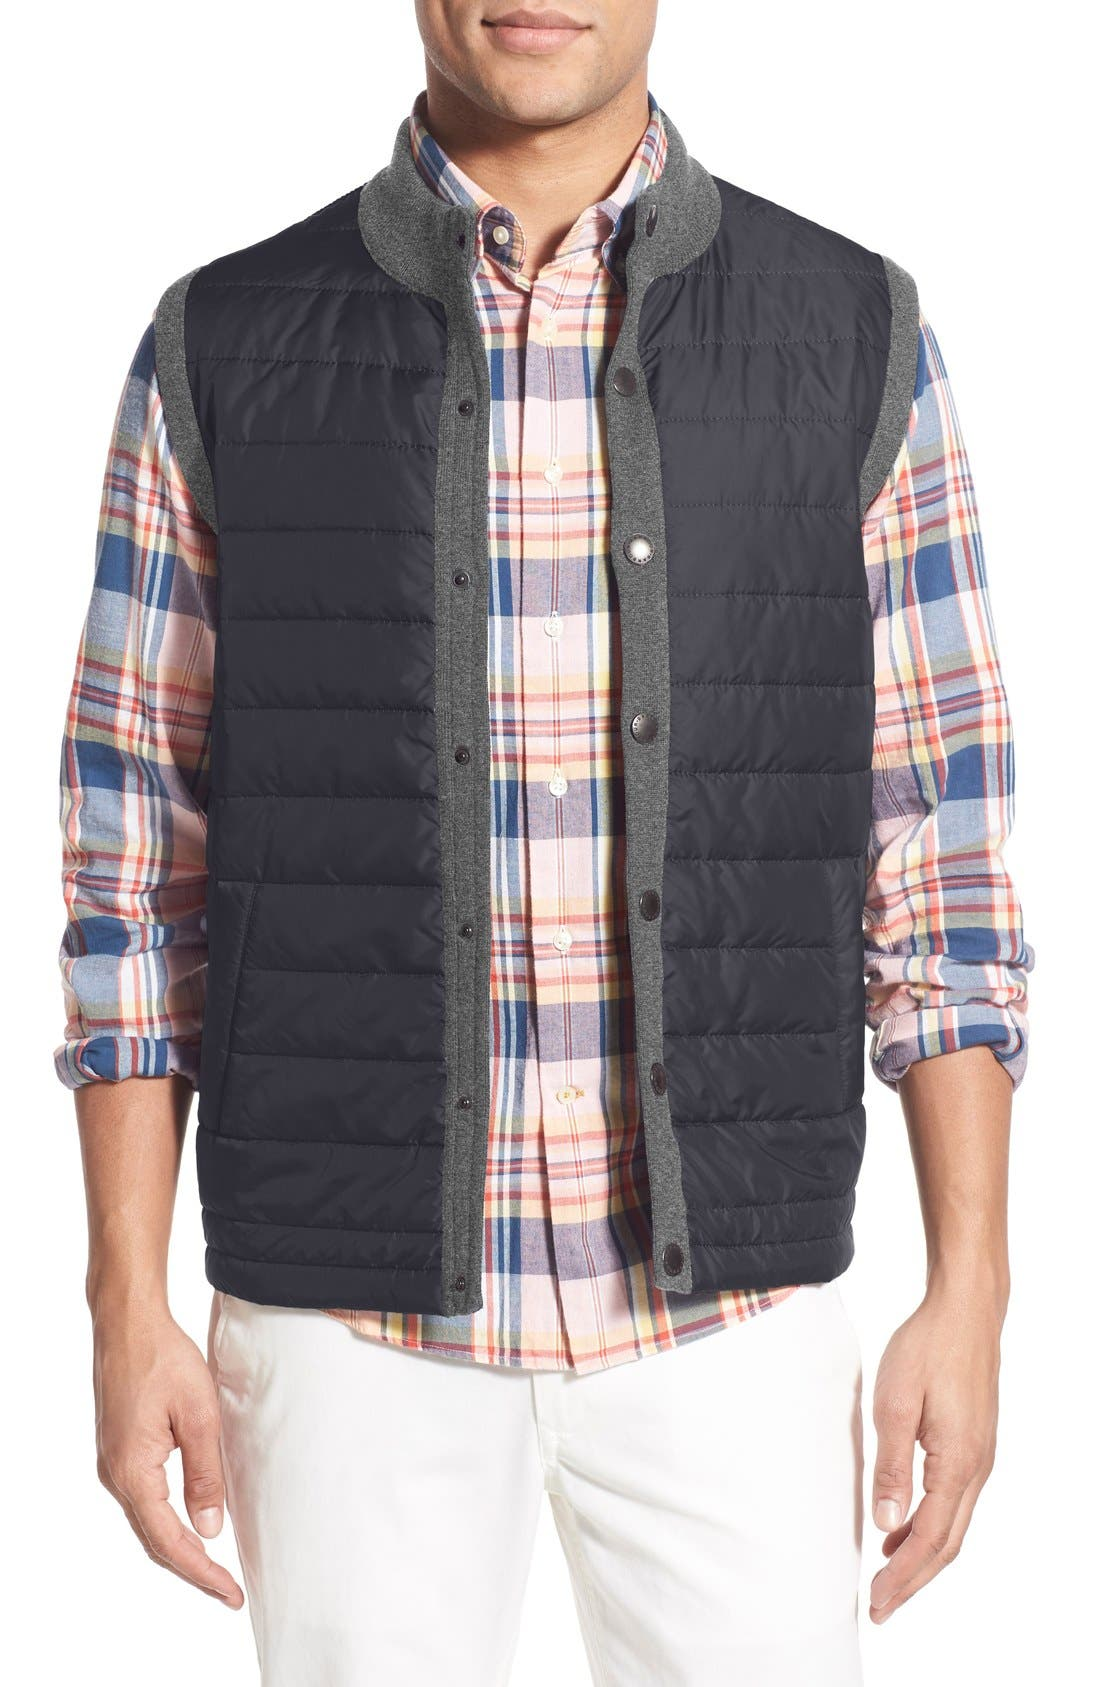 BARBOUR, 'Essential' Tailored Fit Mixed Media Vest, Main thumbnail 1, color, MID GREY